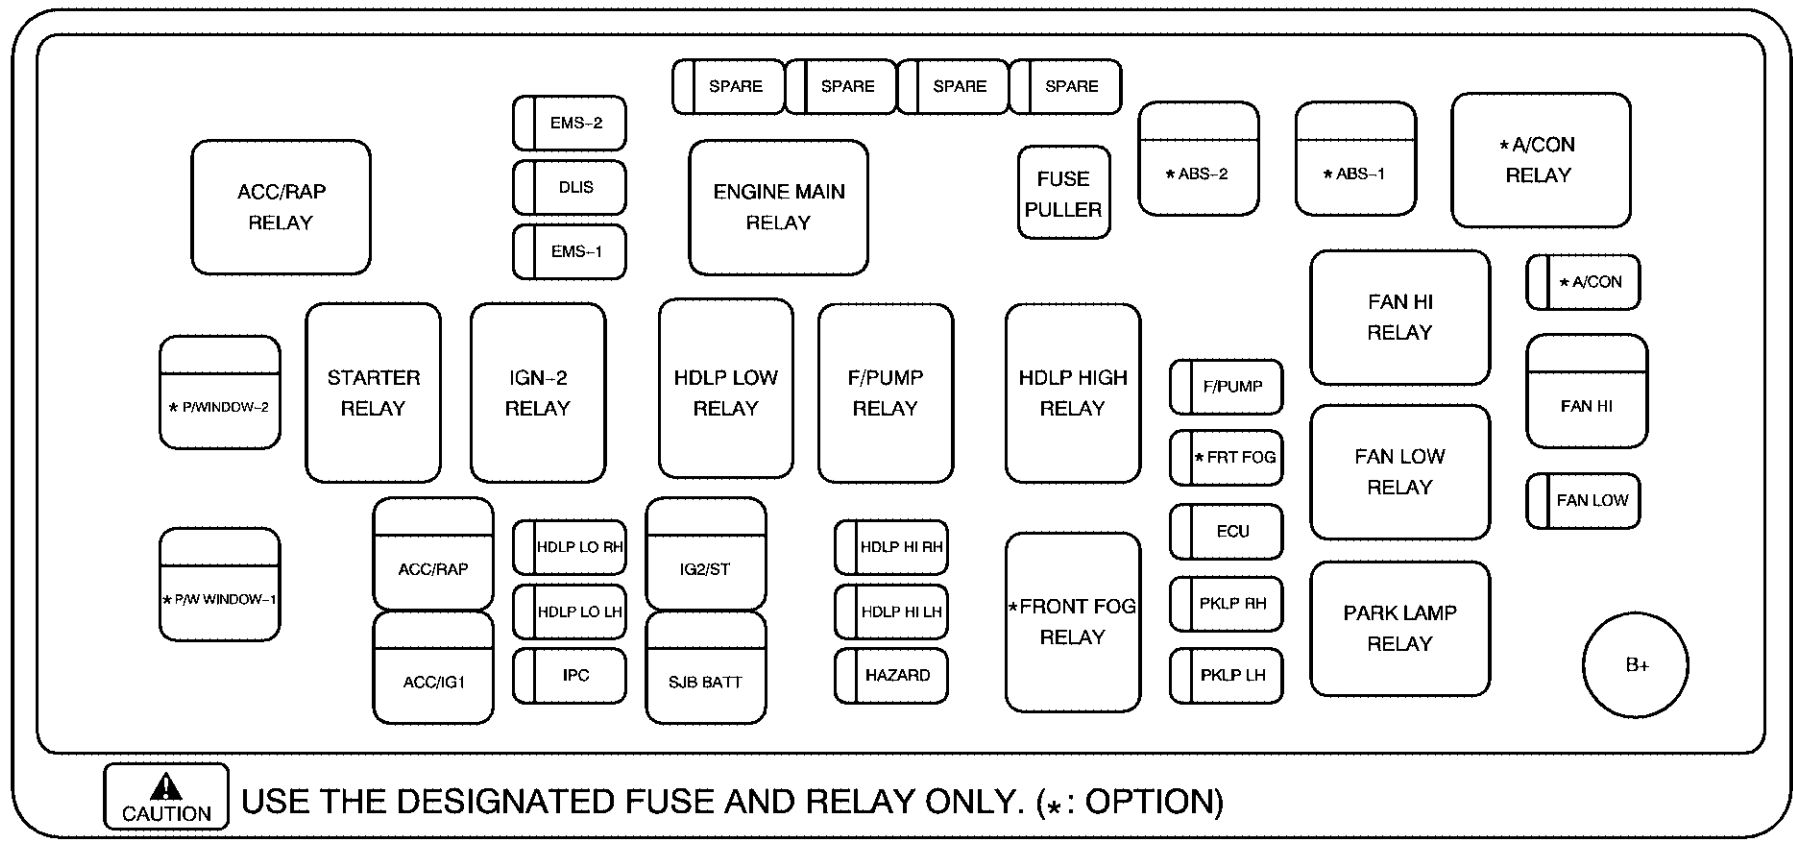 hight resolution of 2004 chevy aveo fuse diagram wiring diagram used 2007 chevy aveo stereo wiring diagram 2004 chevy